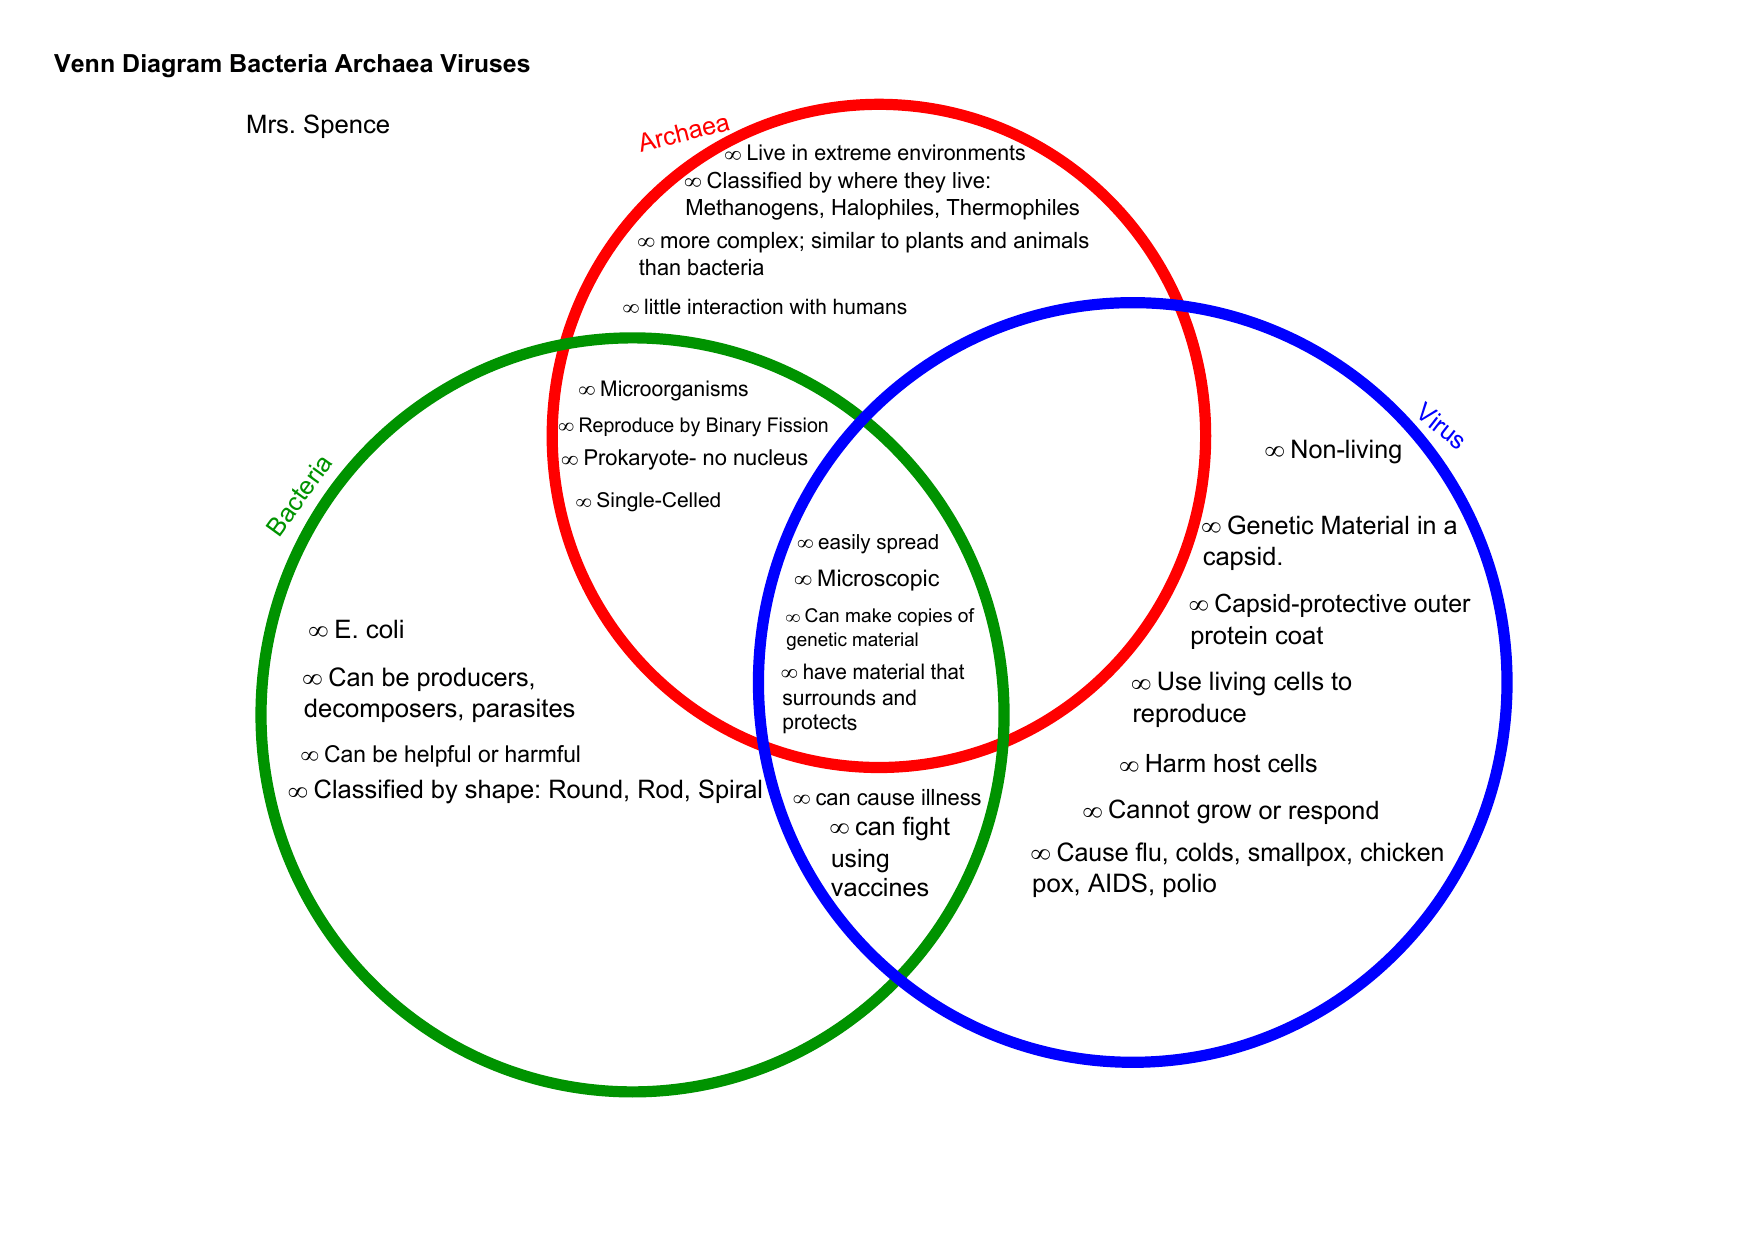 venn diagram of bacteria and archaea tail light wiring ford f150 viruses 015429332 1 cce5f344f2fbaf9514c4a571025caace png